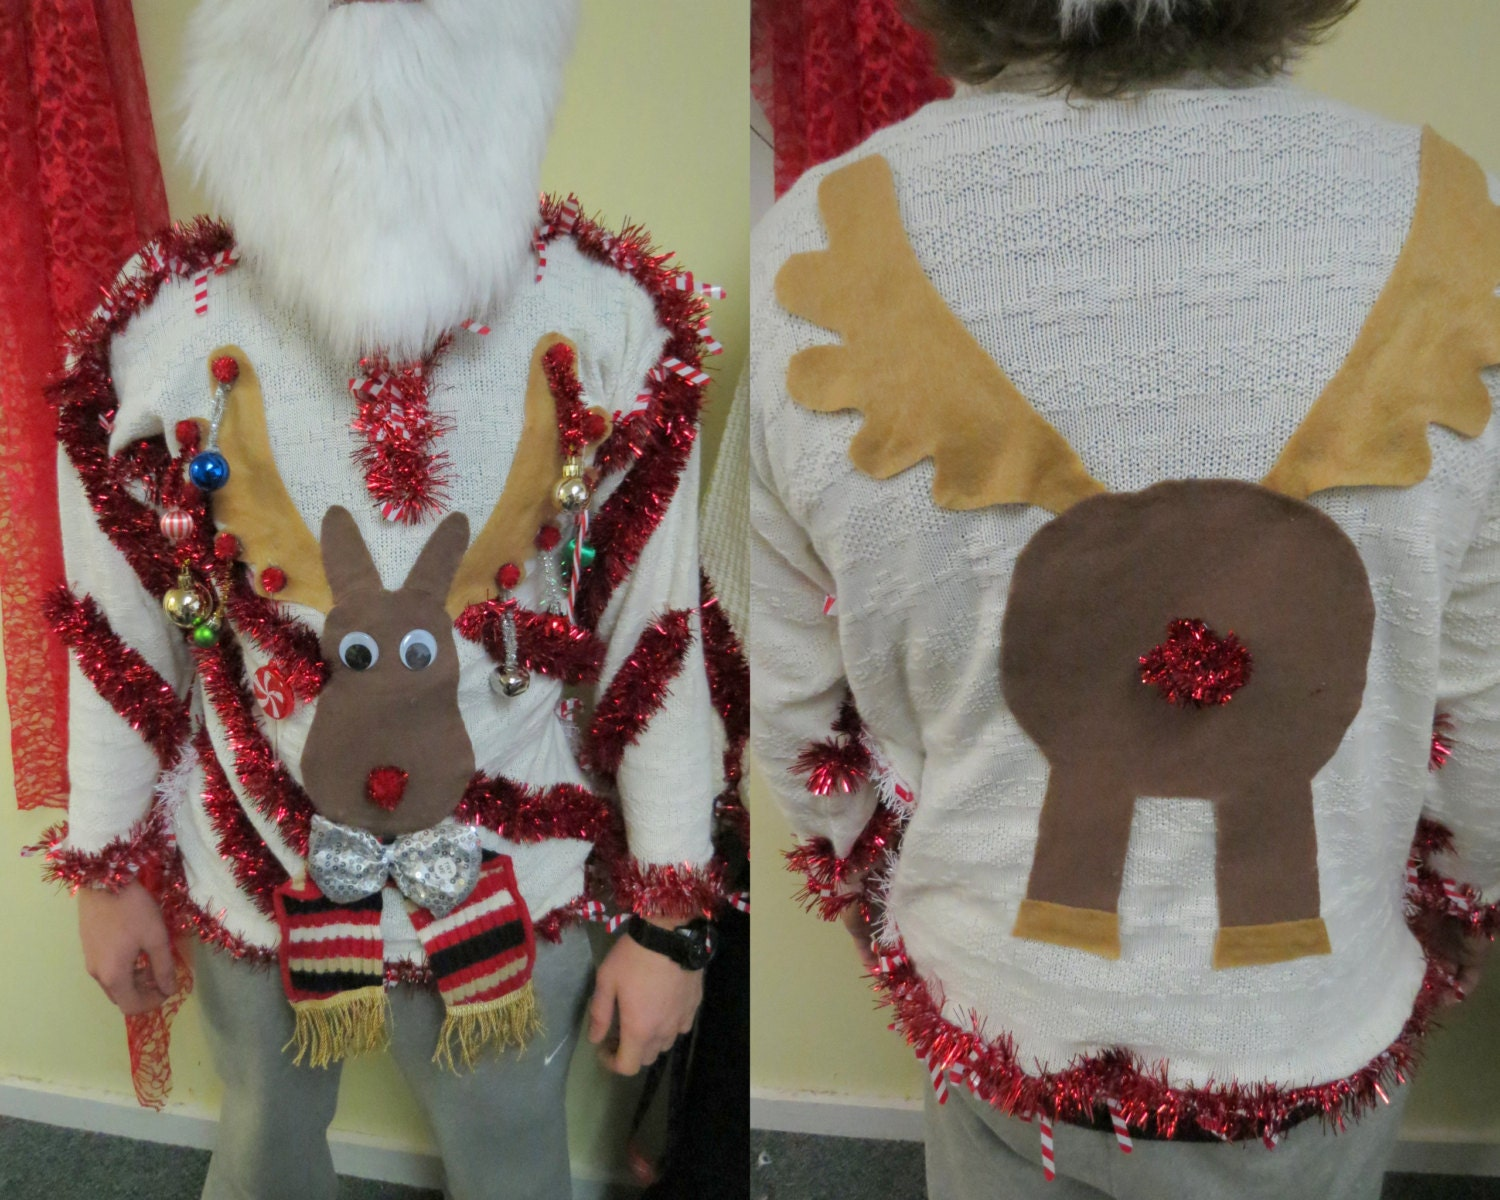 Ugly Light Up Christmas Sweaters For Men Images & Pictures - Becuo